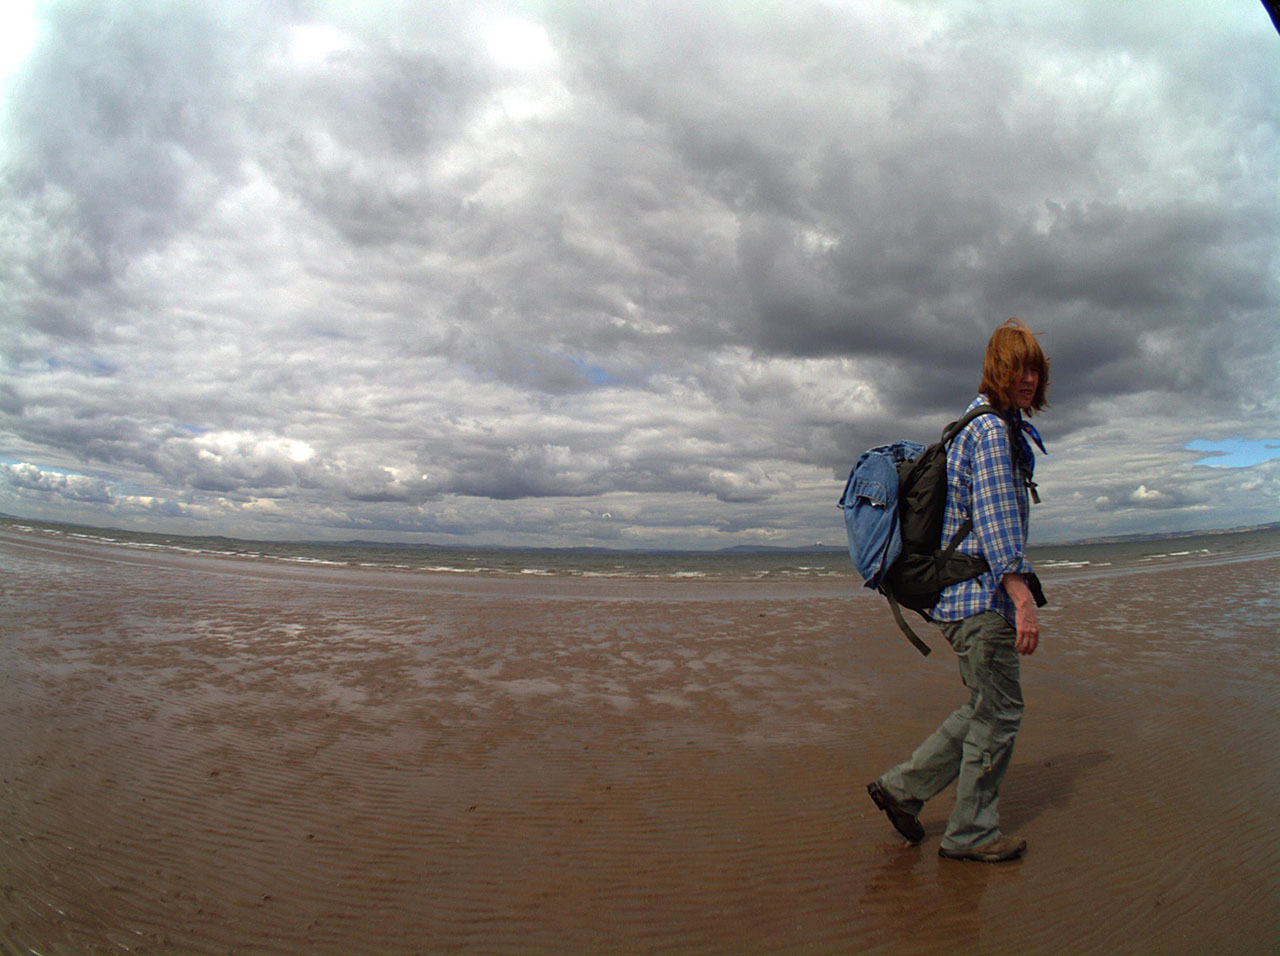 Autographer seaside01